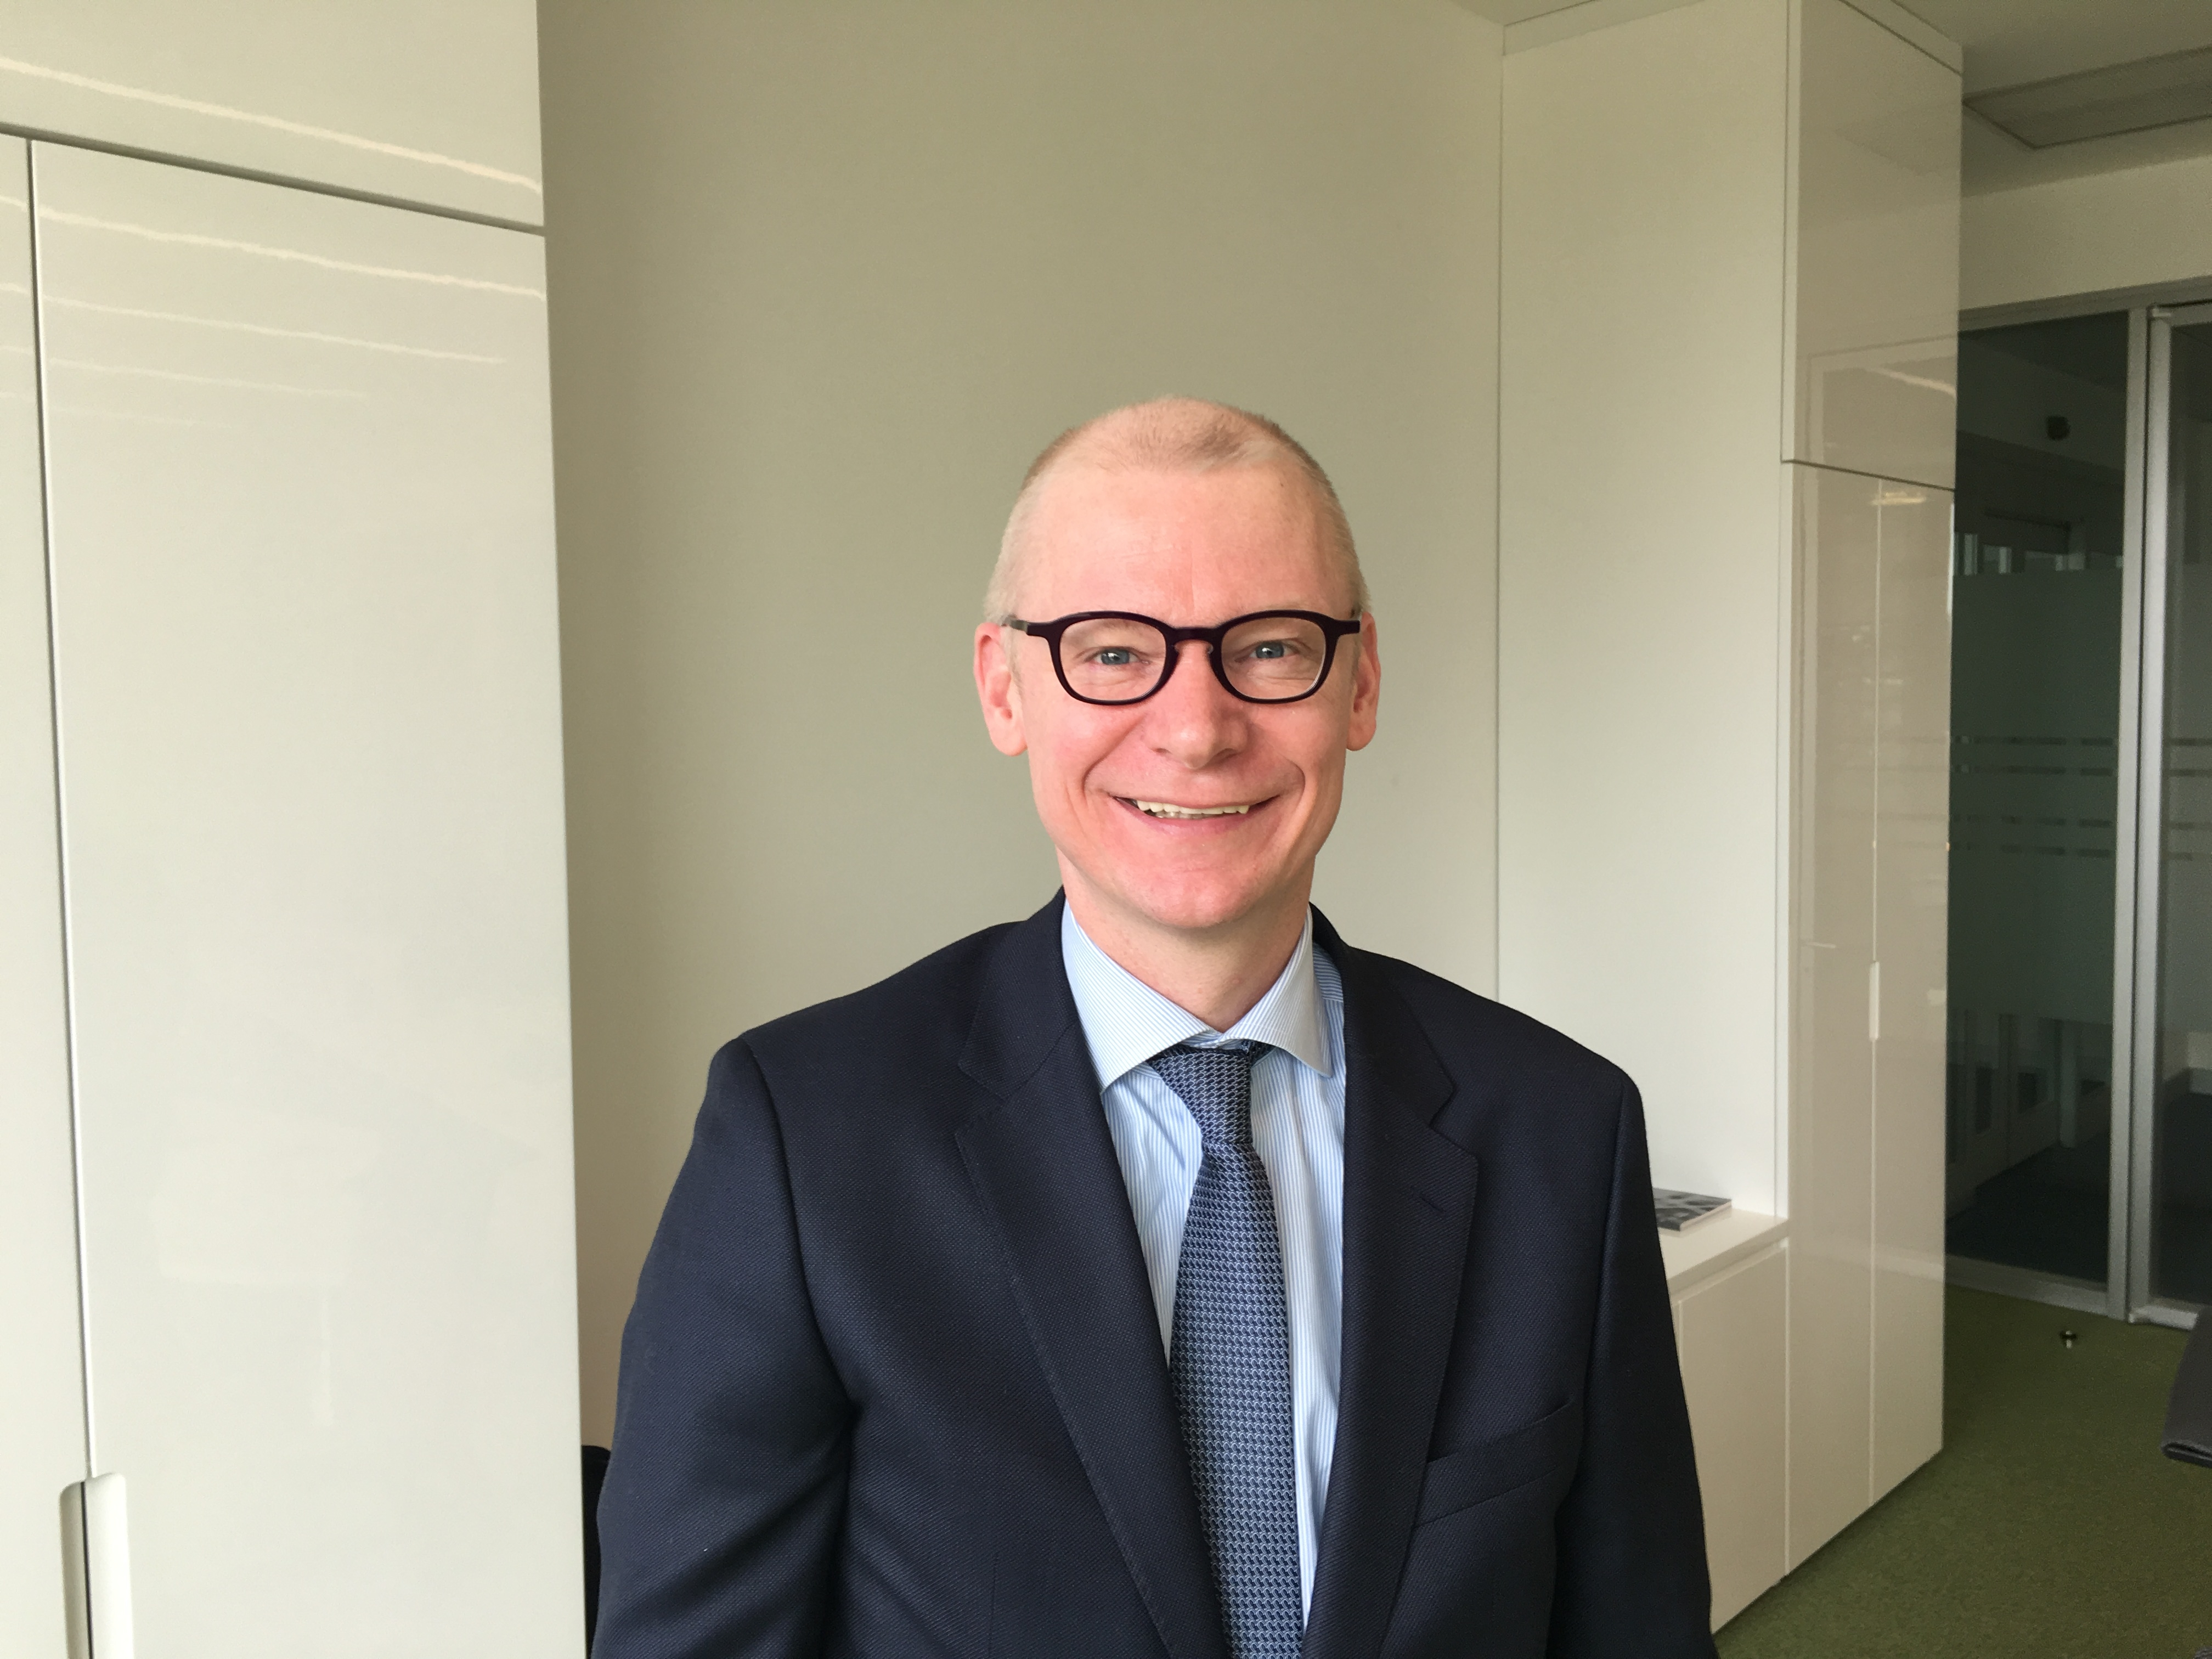 Gilles Thiebaut, Vice President Indirect Sales, SMB and Service providers Enterprise Group EMEA di HPE